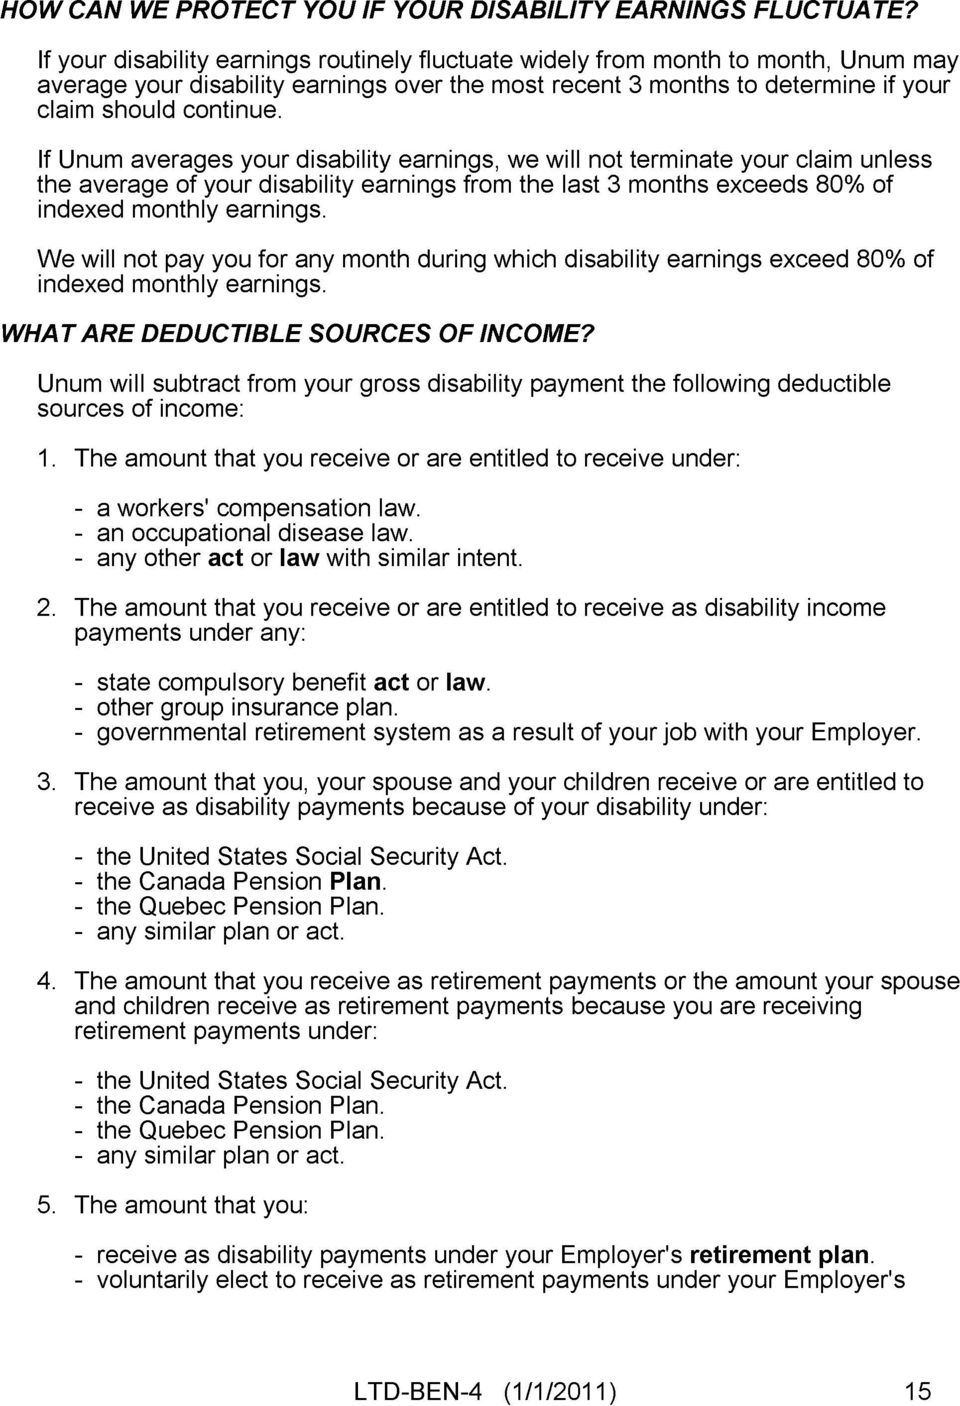 If Unum averages your disability earnings, we will not terminate your claim unless the average of your disability earnings from the last 3 months exceeds 80% of indexed monthly earnings.